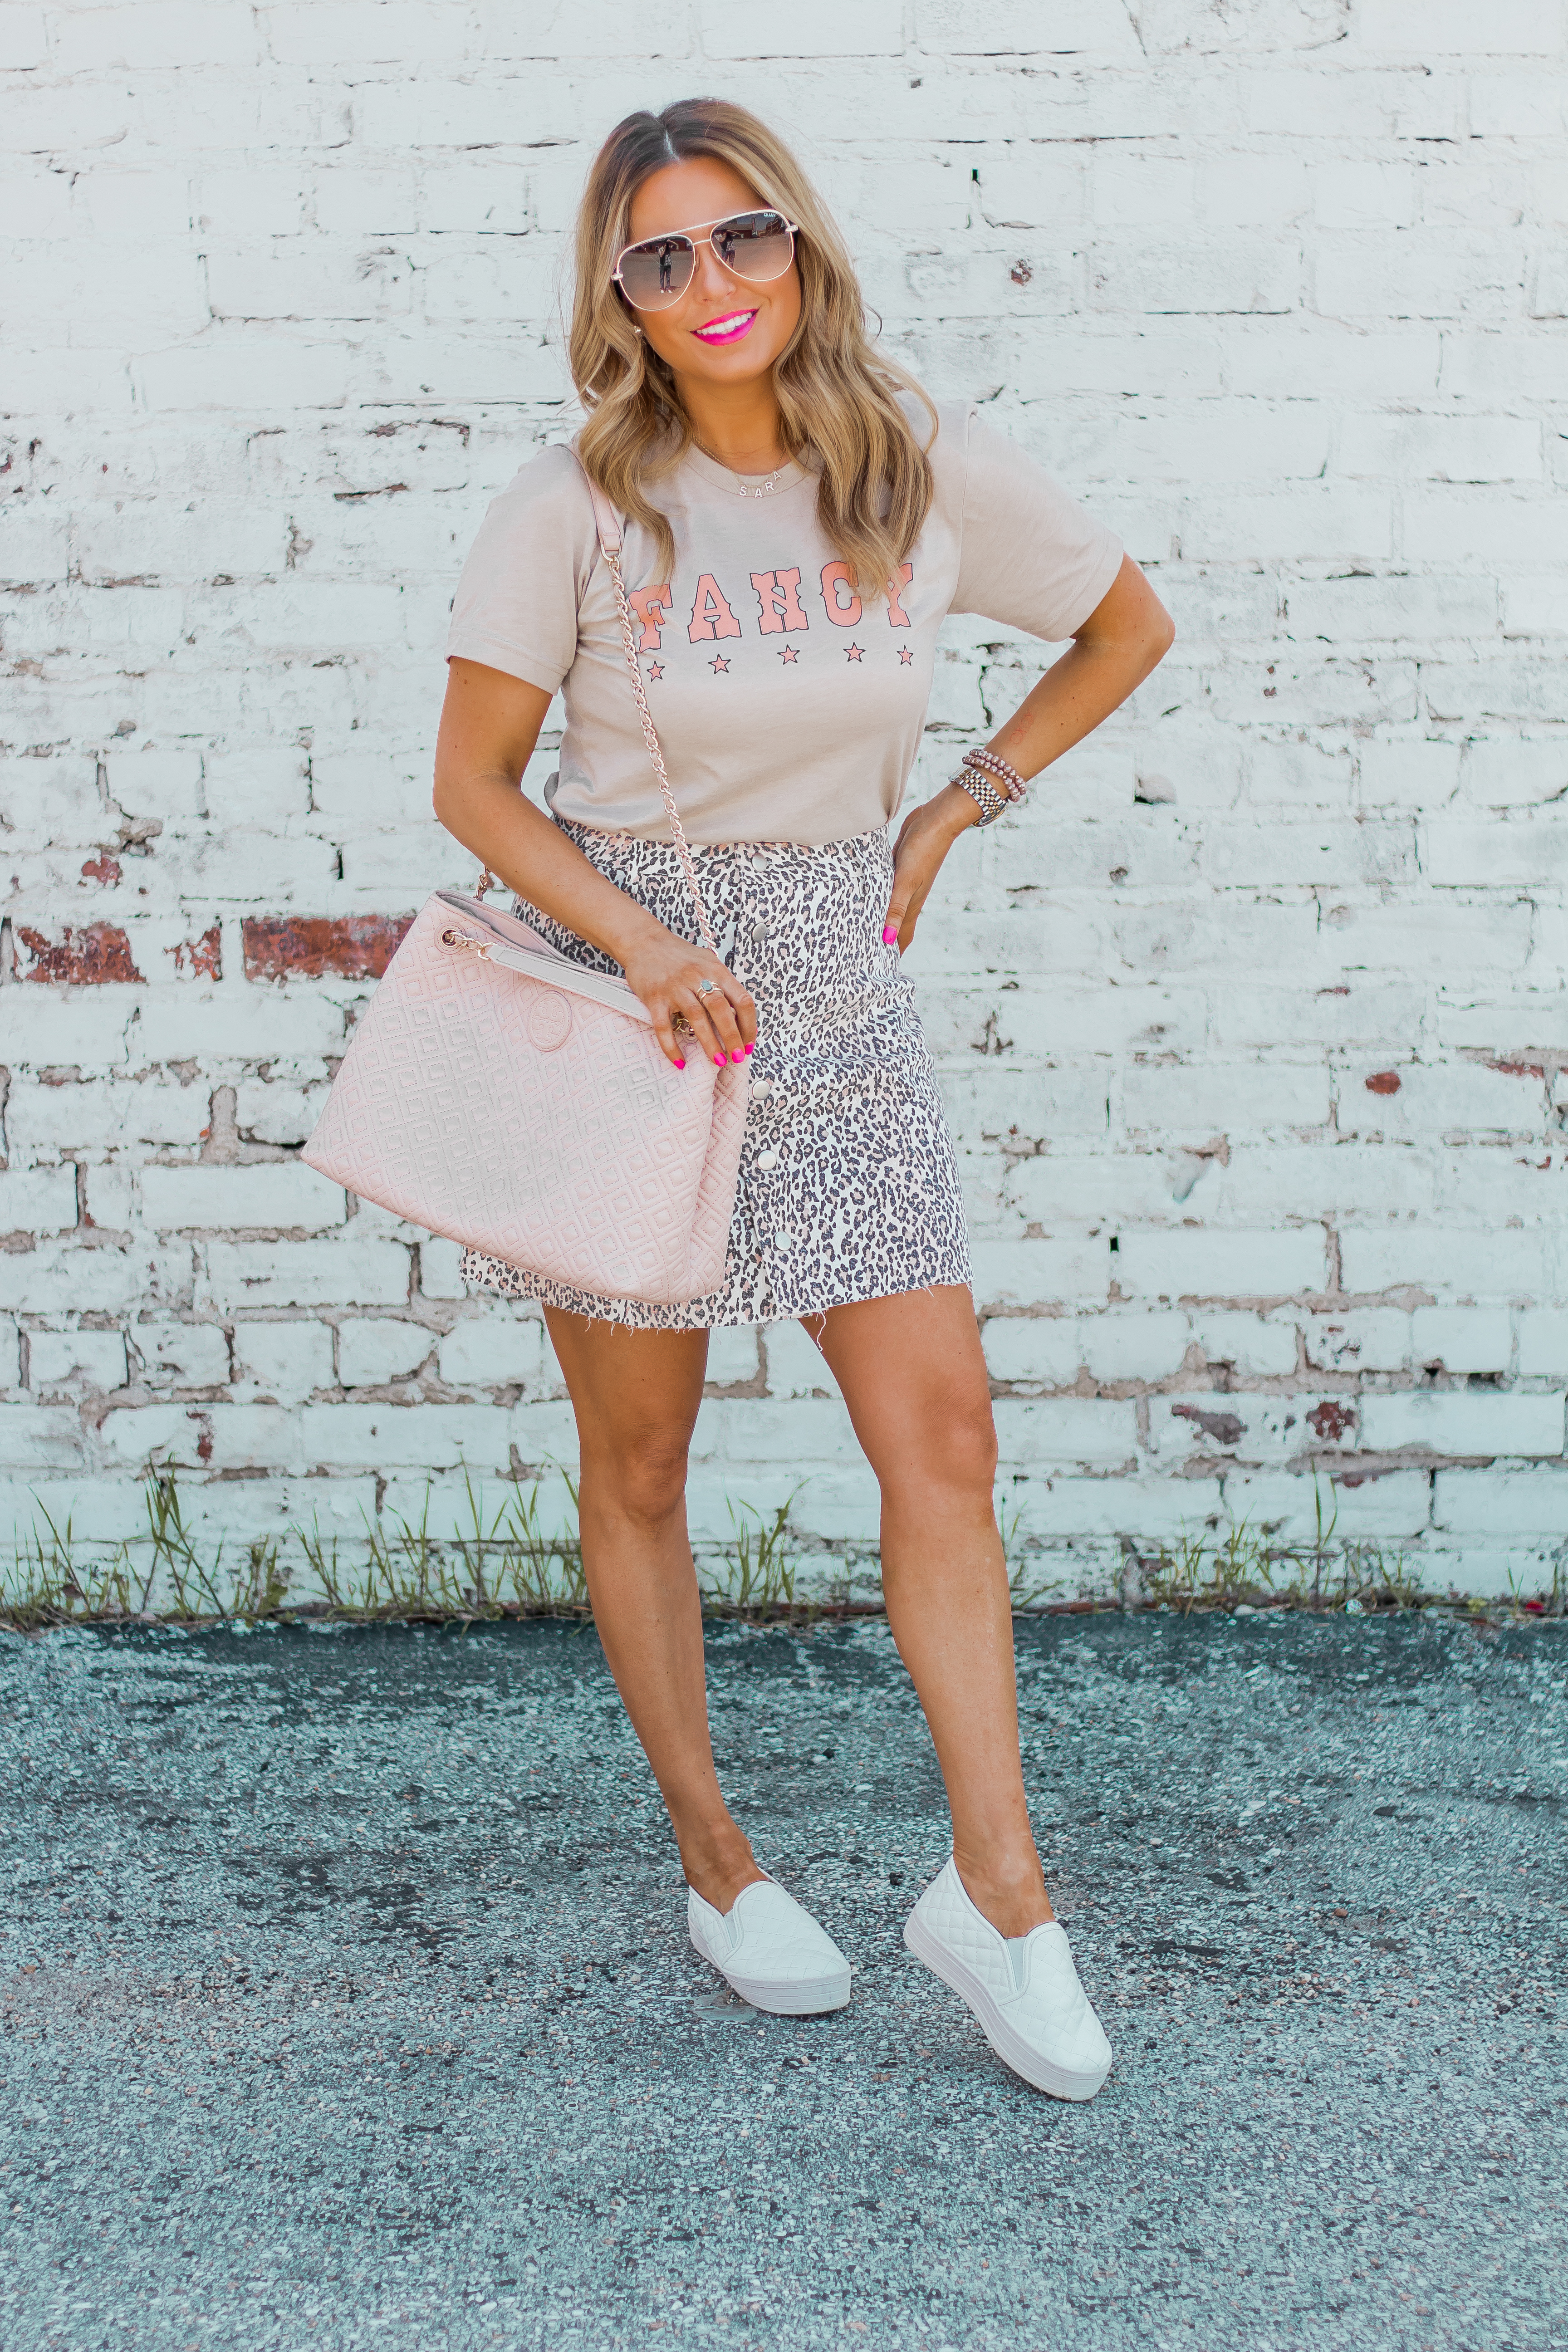 Fancy Graphic Tee-Leopard Skirt-Sugar Boutique-$250 Gift Card Giveaway-Tory Burch Fleming Bag-Quay Sunglasses-Sabby Style-Omaha Blogger-Women's Fashion-Spring Fashion-Summer Outfit-13